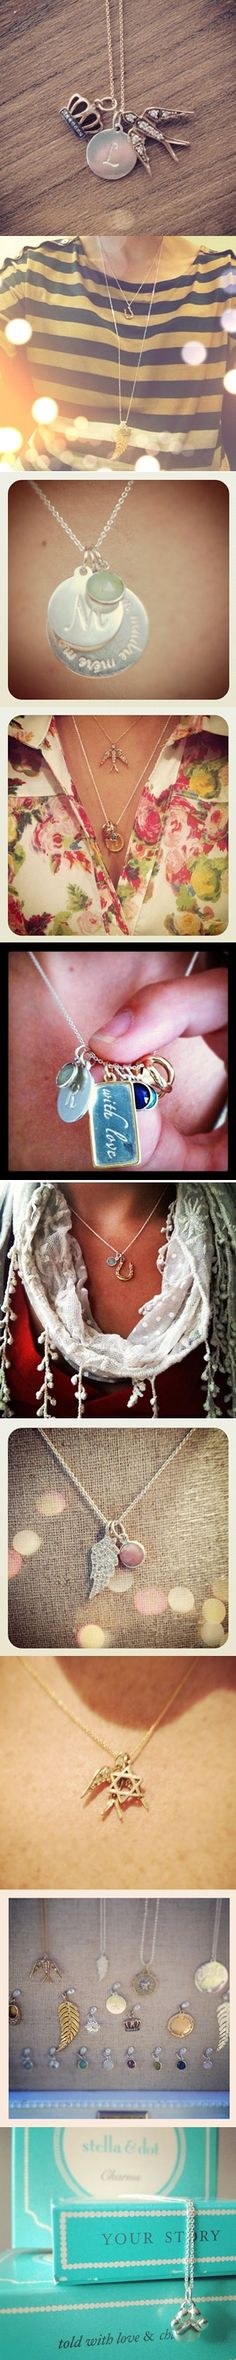 Fab gift idea: Personalized charm necklaces from Stella & Dot.